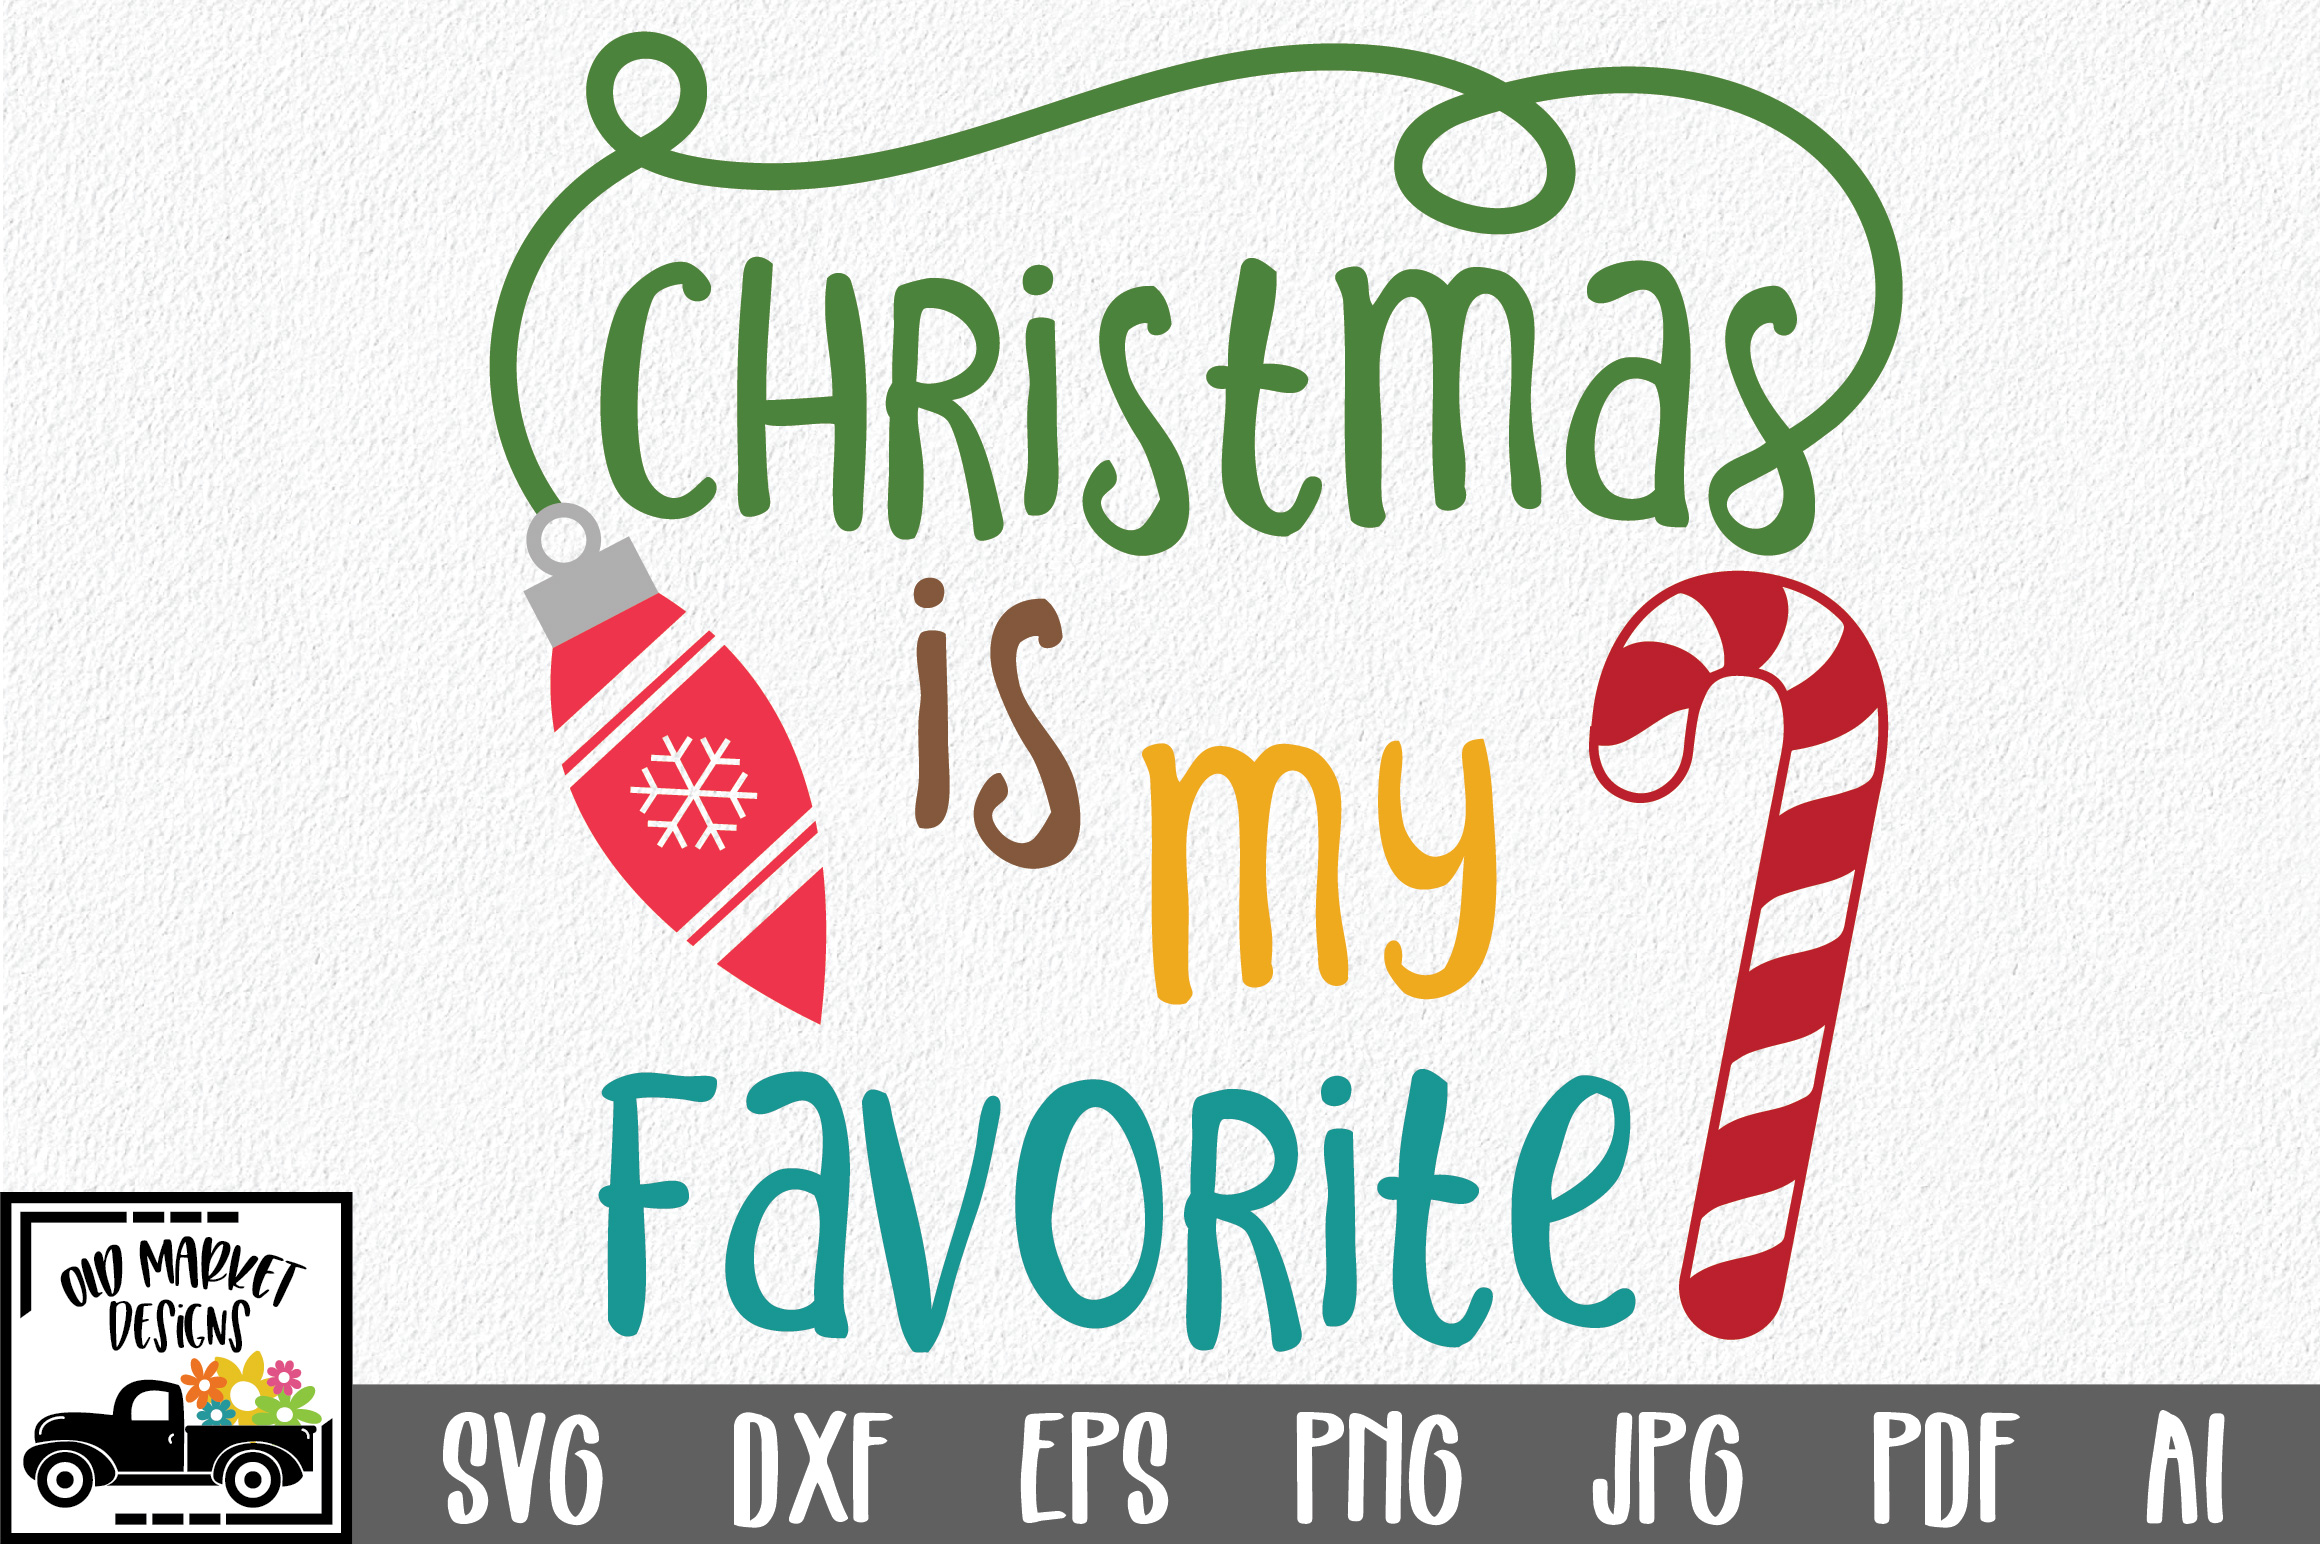 Why Christmas is my favorite holiday?